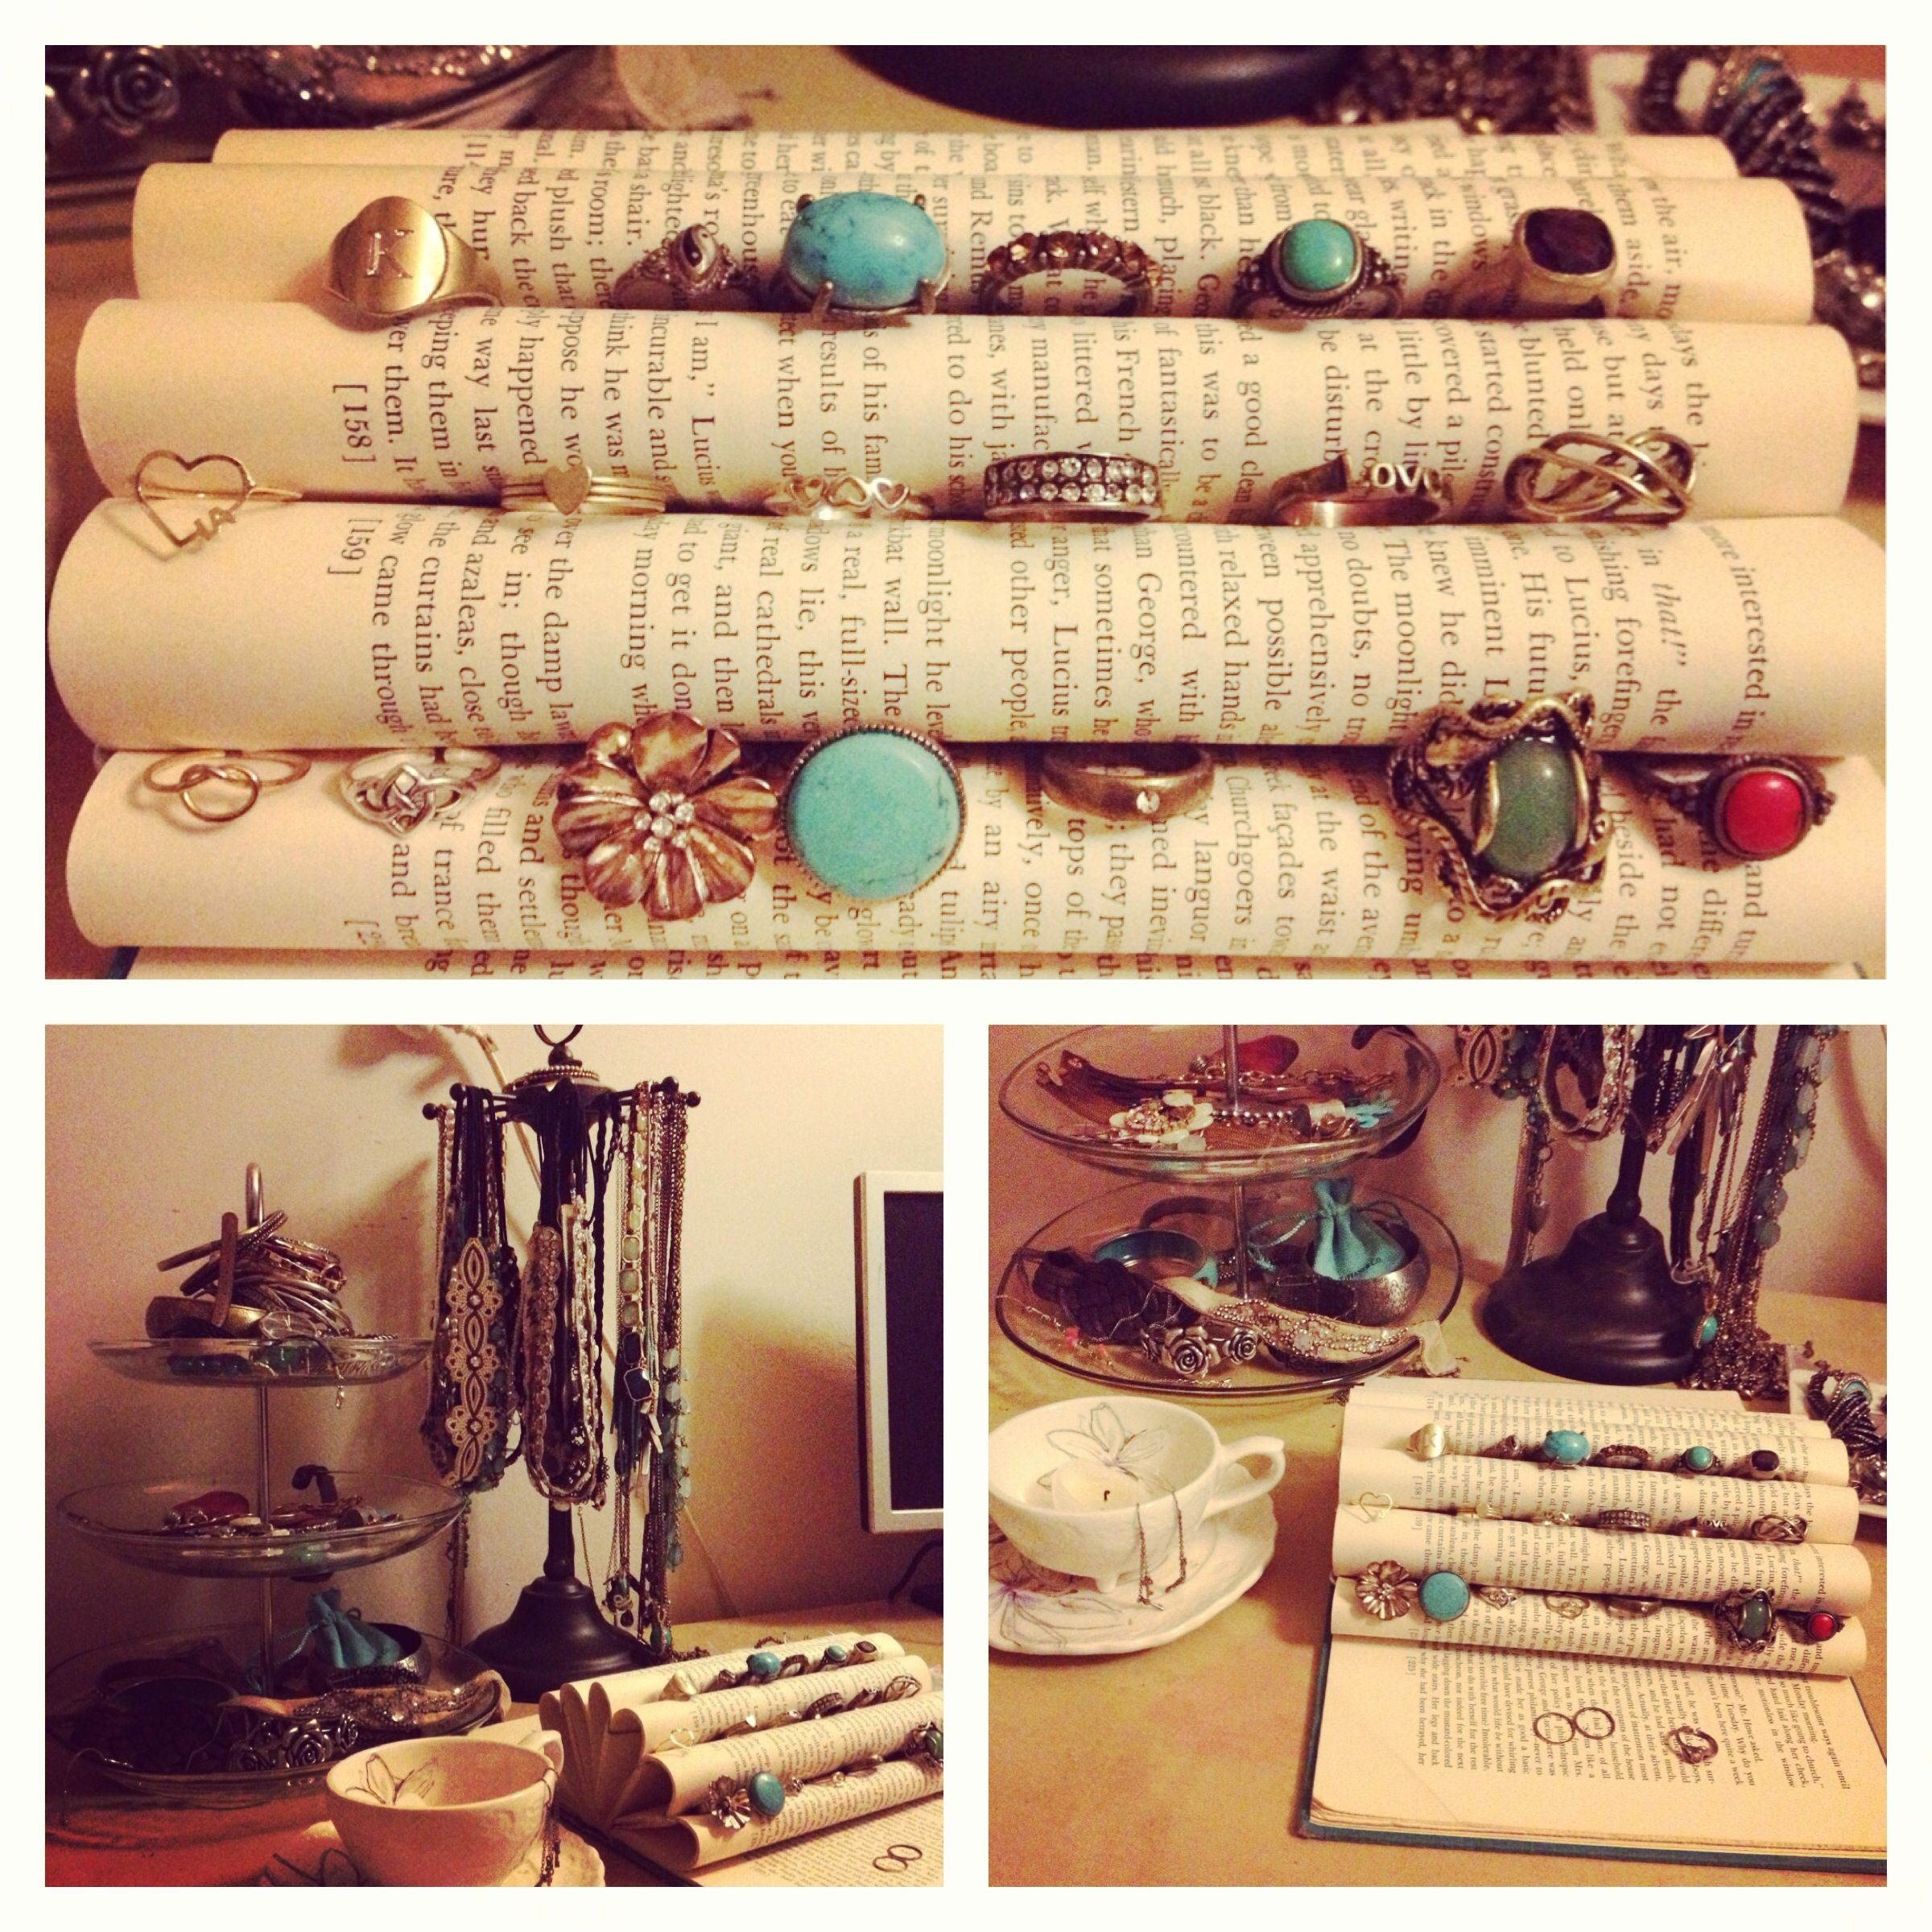 Creative ways to store your jewelry found on pinterest for Clever ways to store jewelry